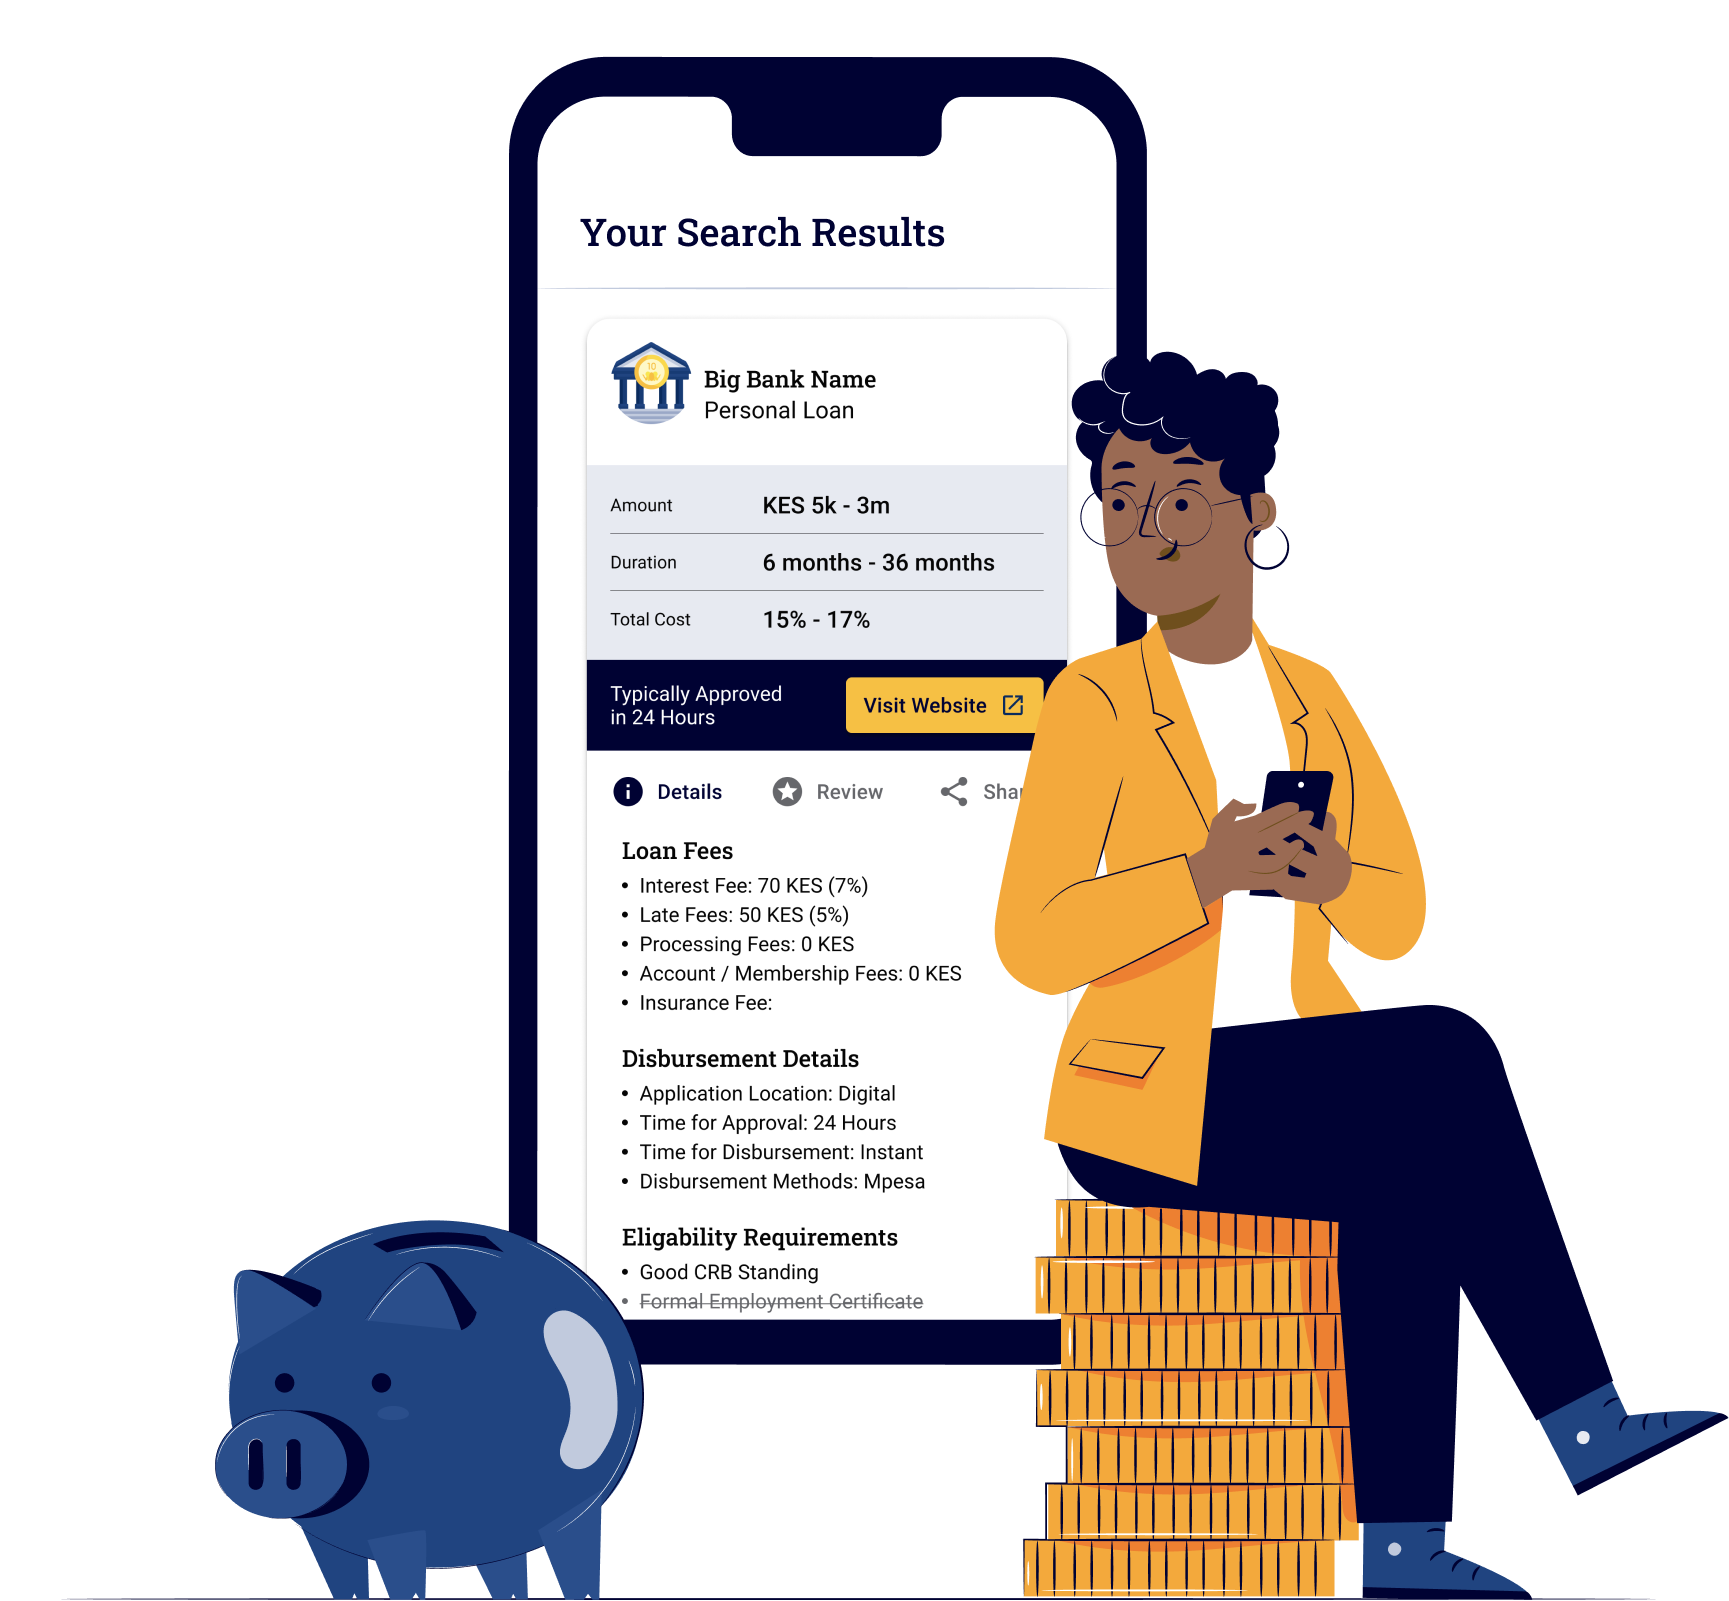 A Kenyan woman is excited about her Personal Loan search results on Money254 and feeling confident about her financial future.